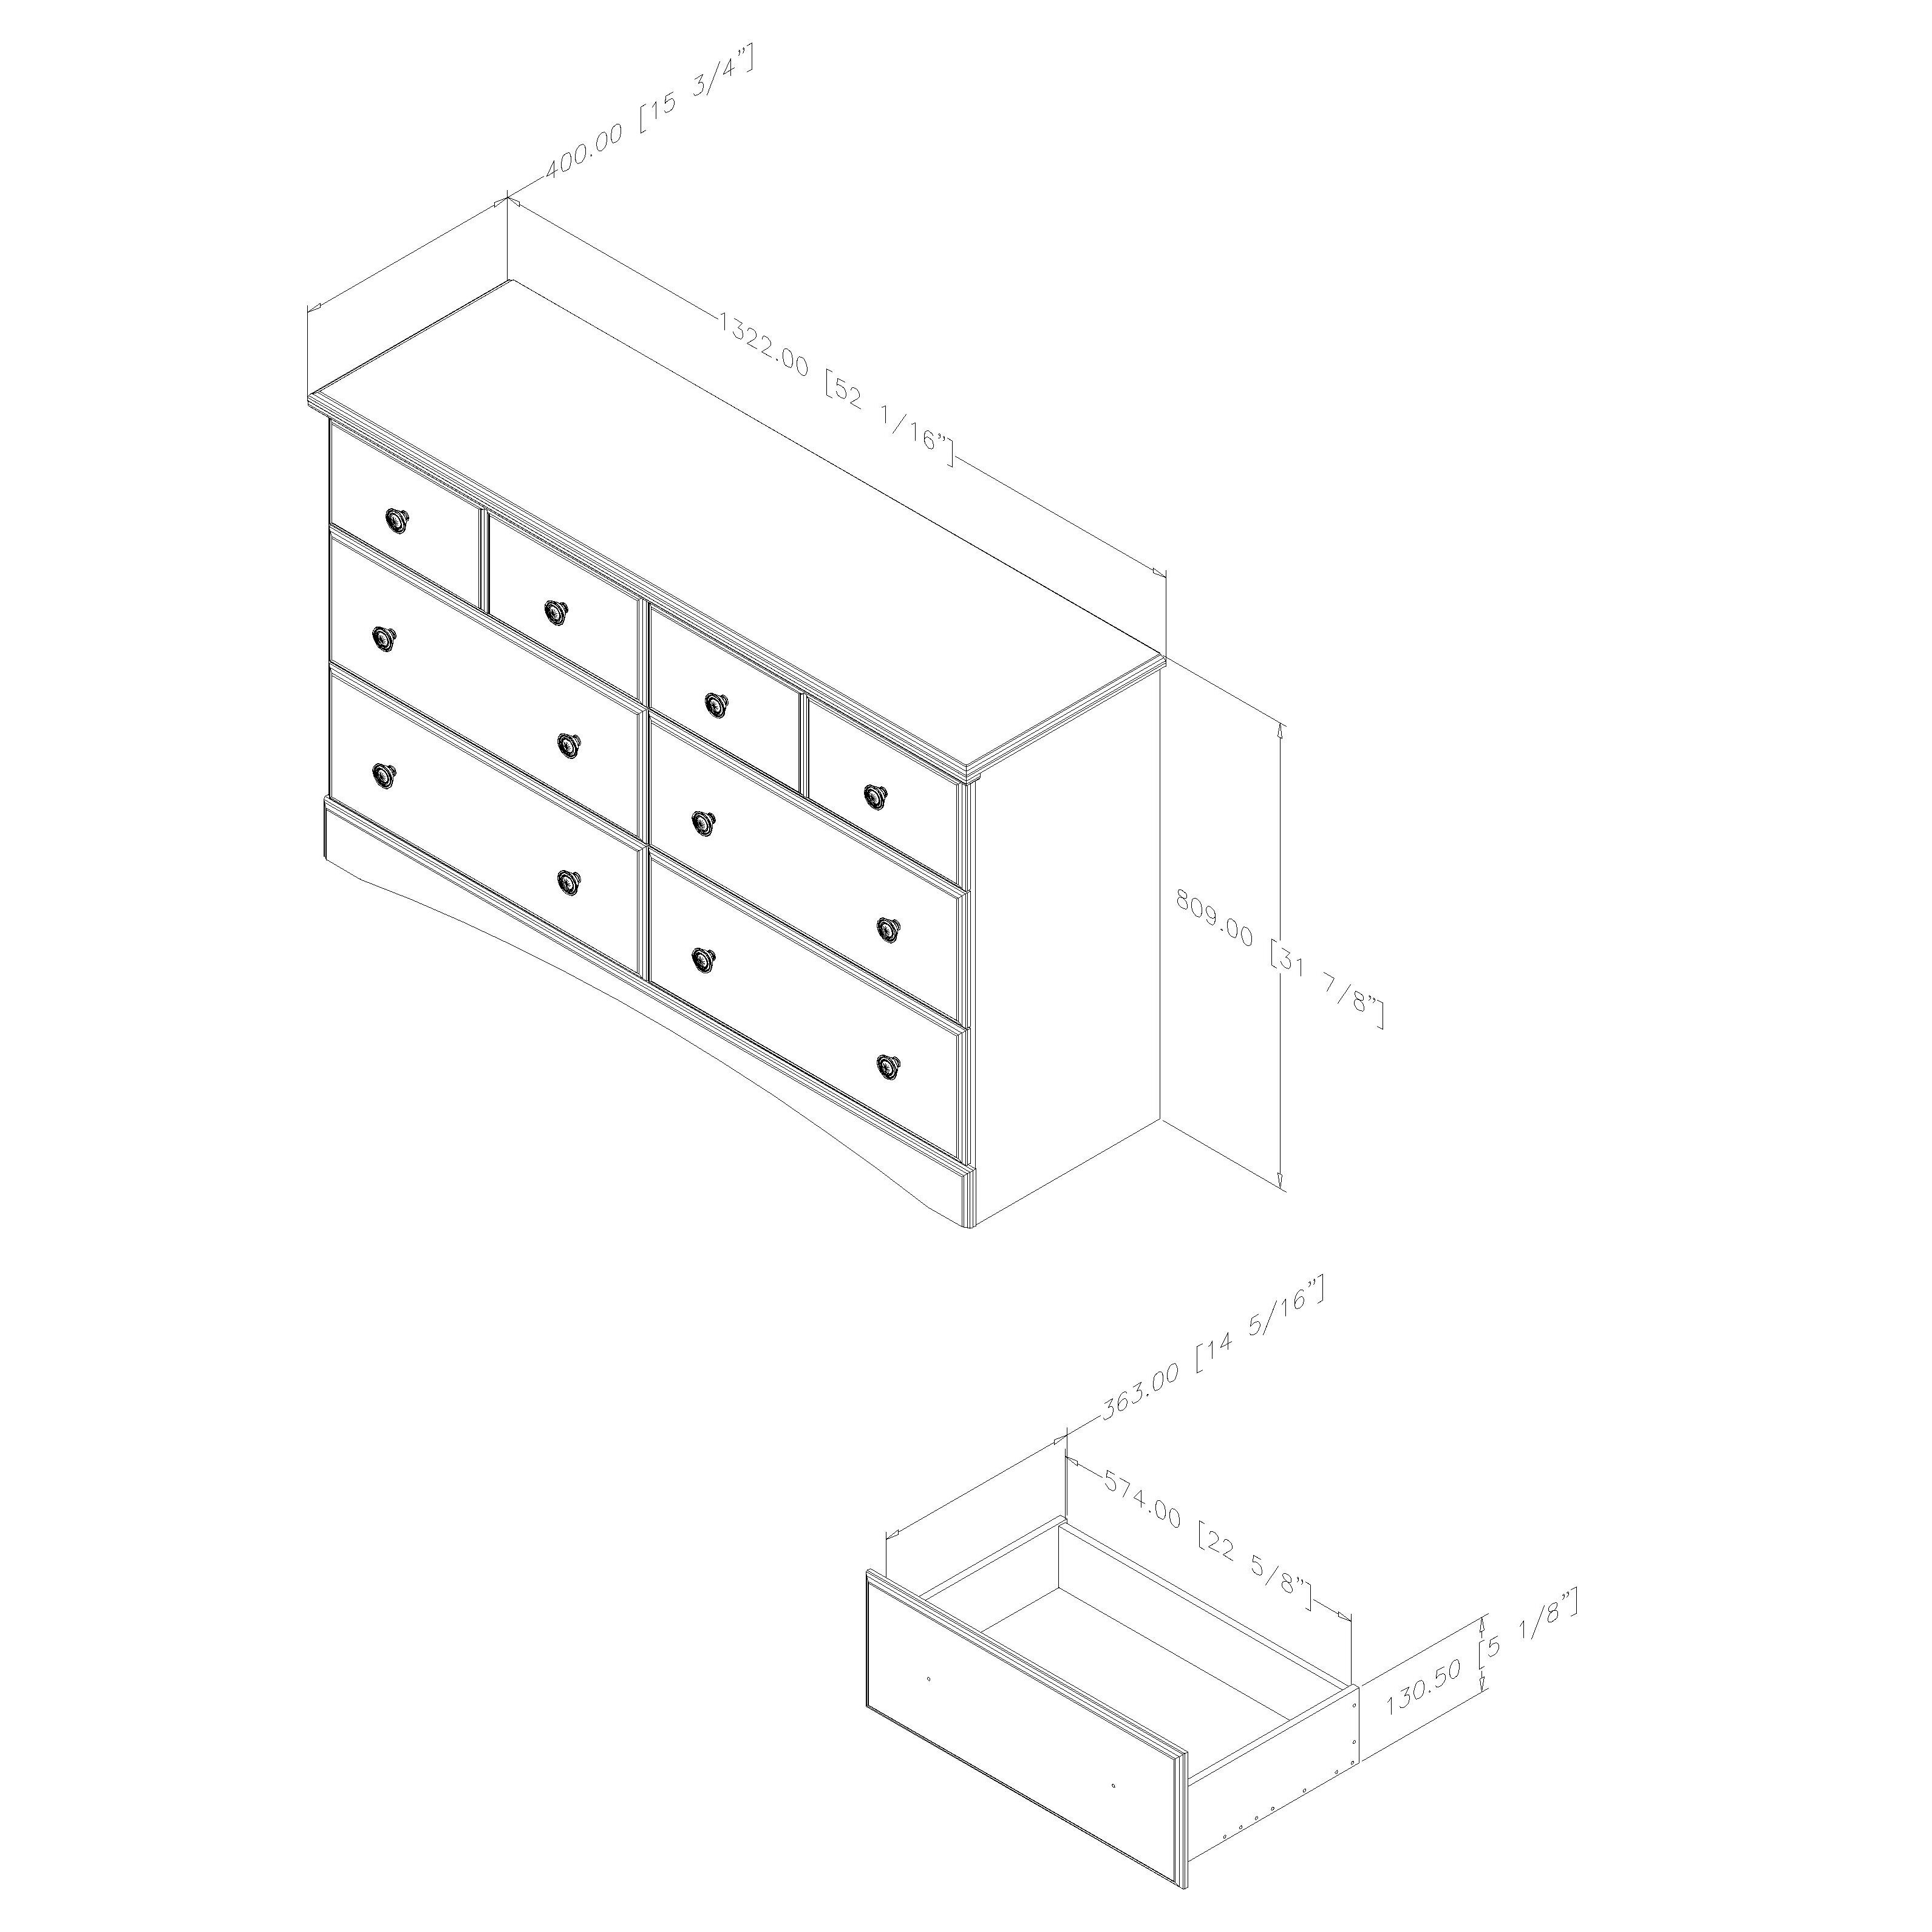 South Shore Morning Dew 6 Drawer Dresser amp Reviews Wayfair : South Shore Morning Dew 6 Drawer Dresser 9016027 from www.wayfair.com size 3182 x 3182 jpeg 373kB